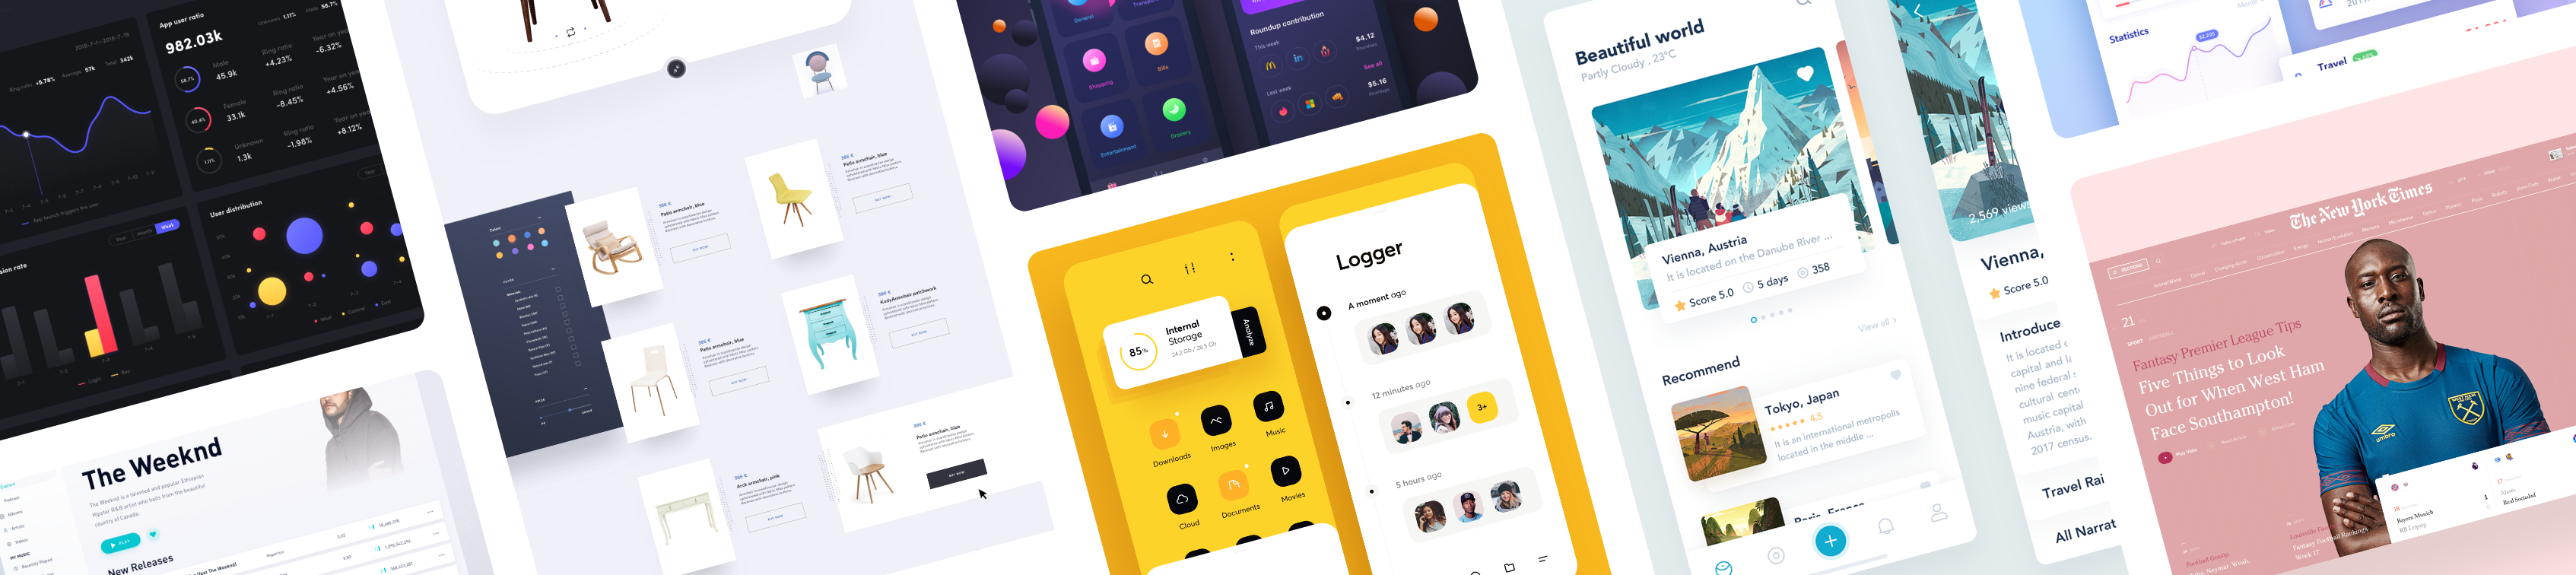 UI Design Inspiration 4